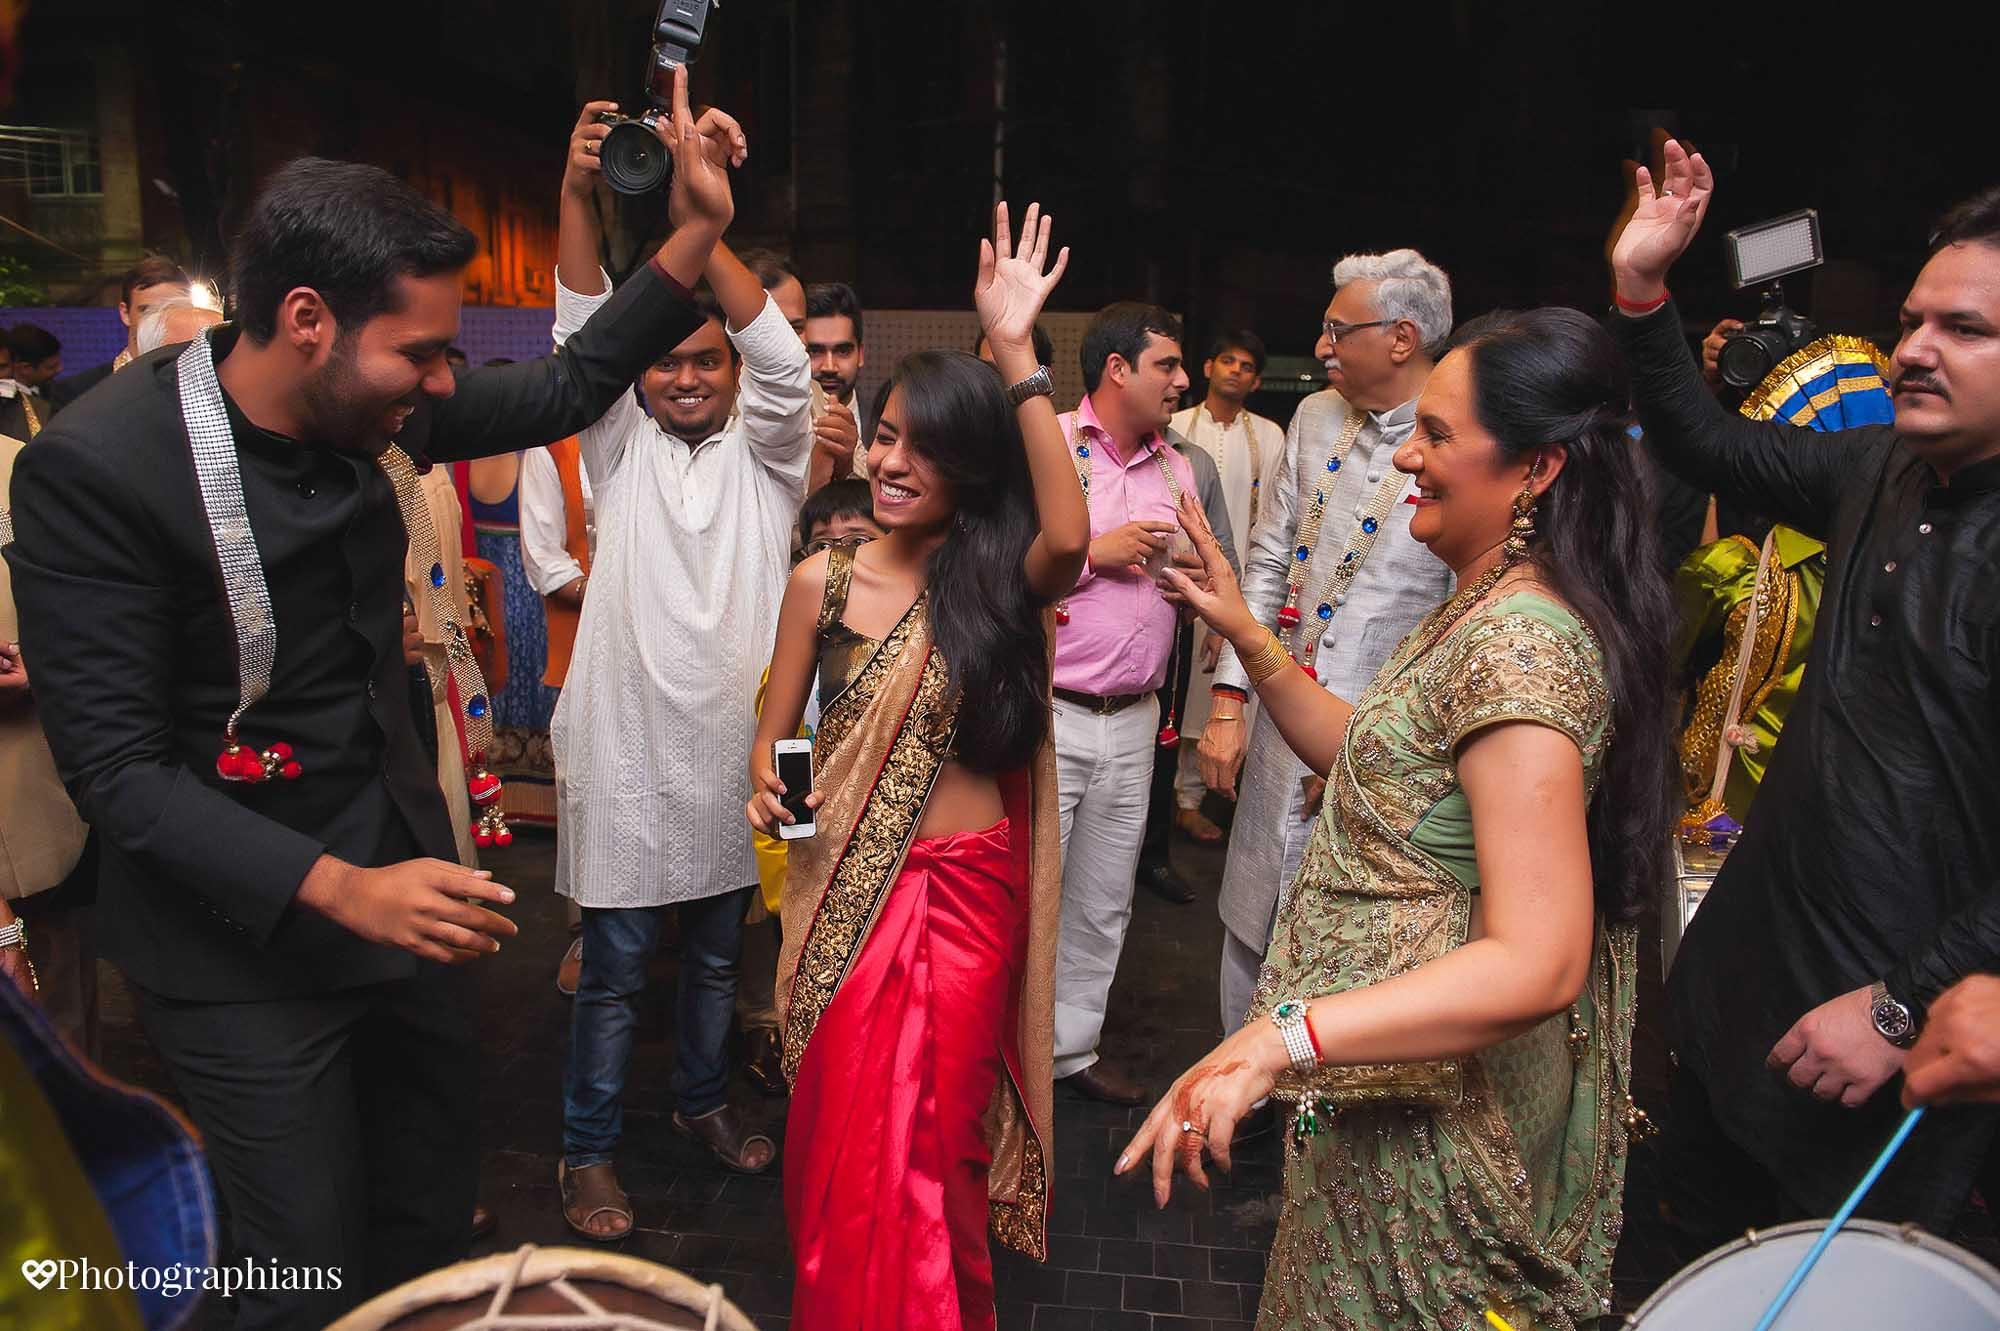 Punjabi_Marwari_Wedding_Kolkata_Photographians_-VIDHI-189